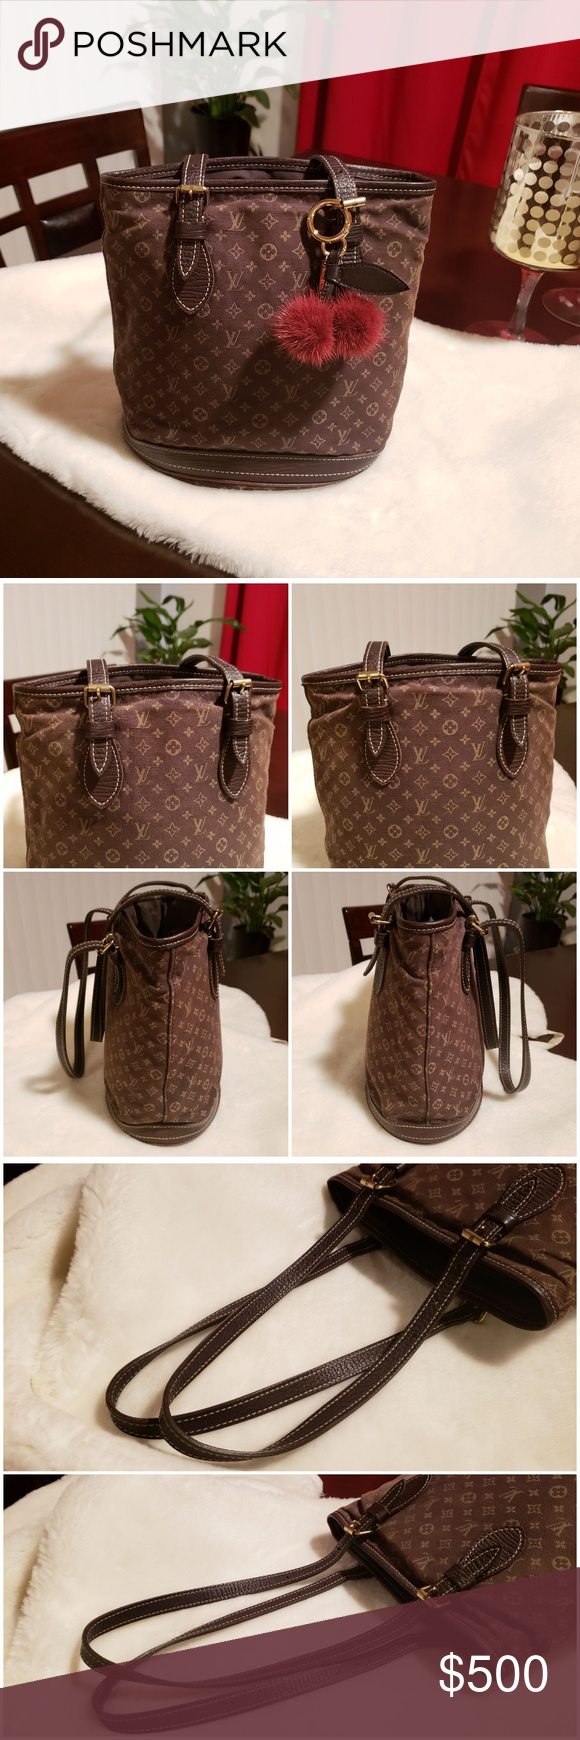 1989c25088f Louis Vuitton Mini Lin PM Bucket Bag Beautiful and authentic Louis Vuitton  PM Bucket Bag 😍